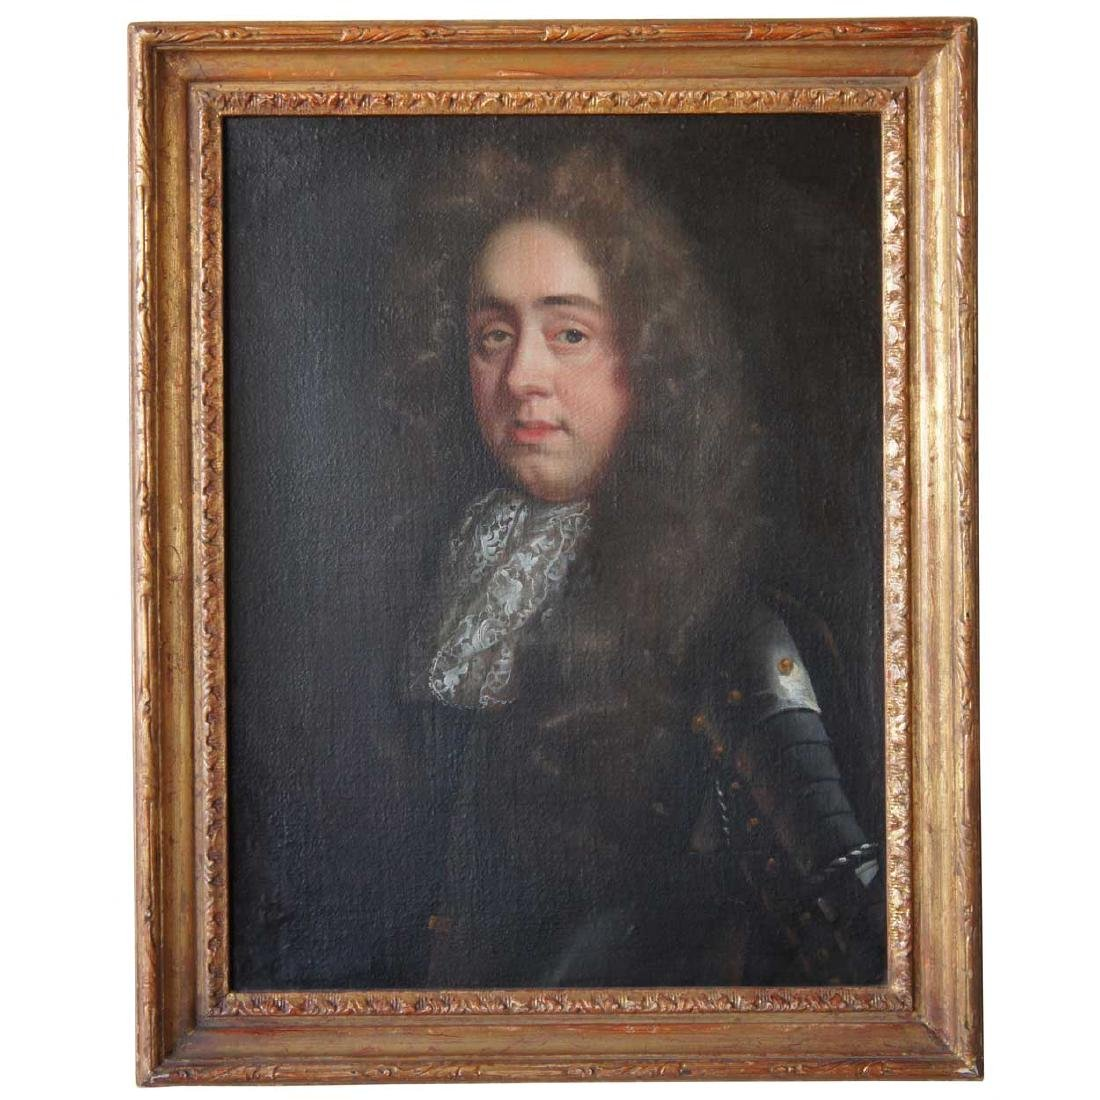 English 17th century Oil on Canvas Portrait Painting